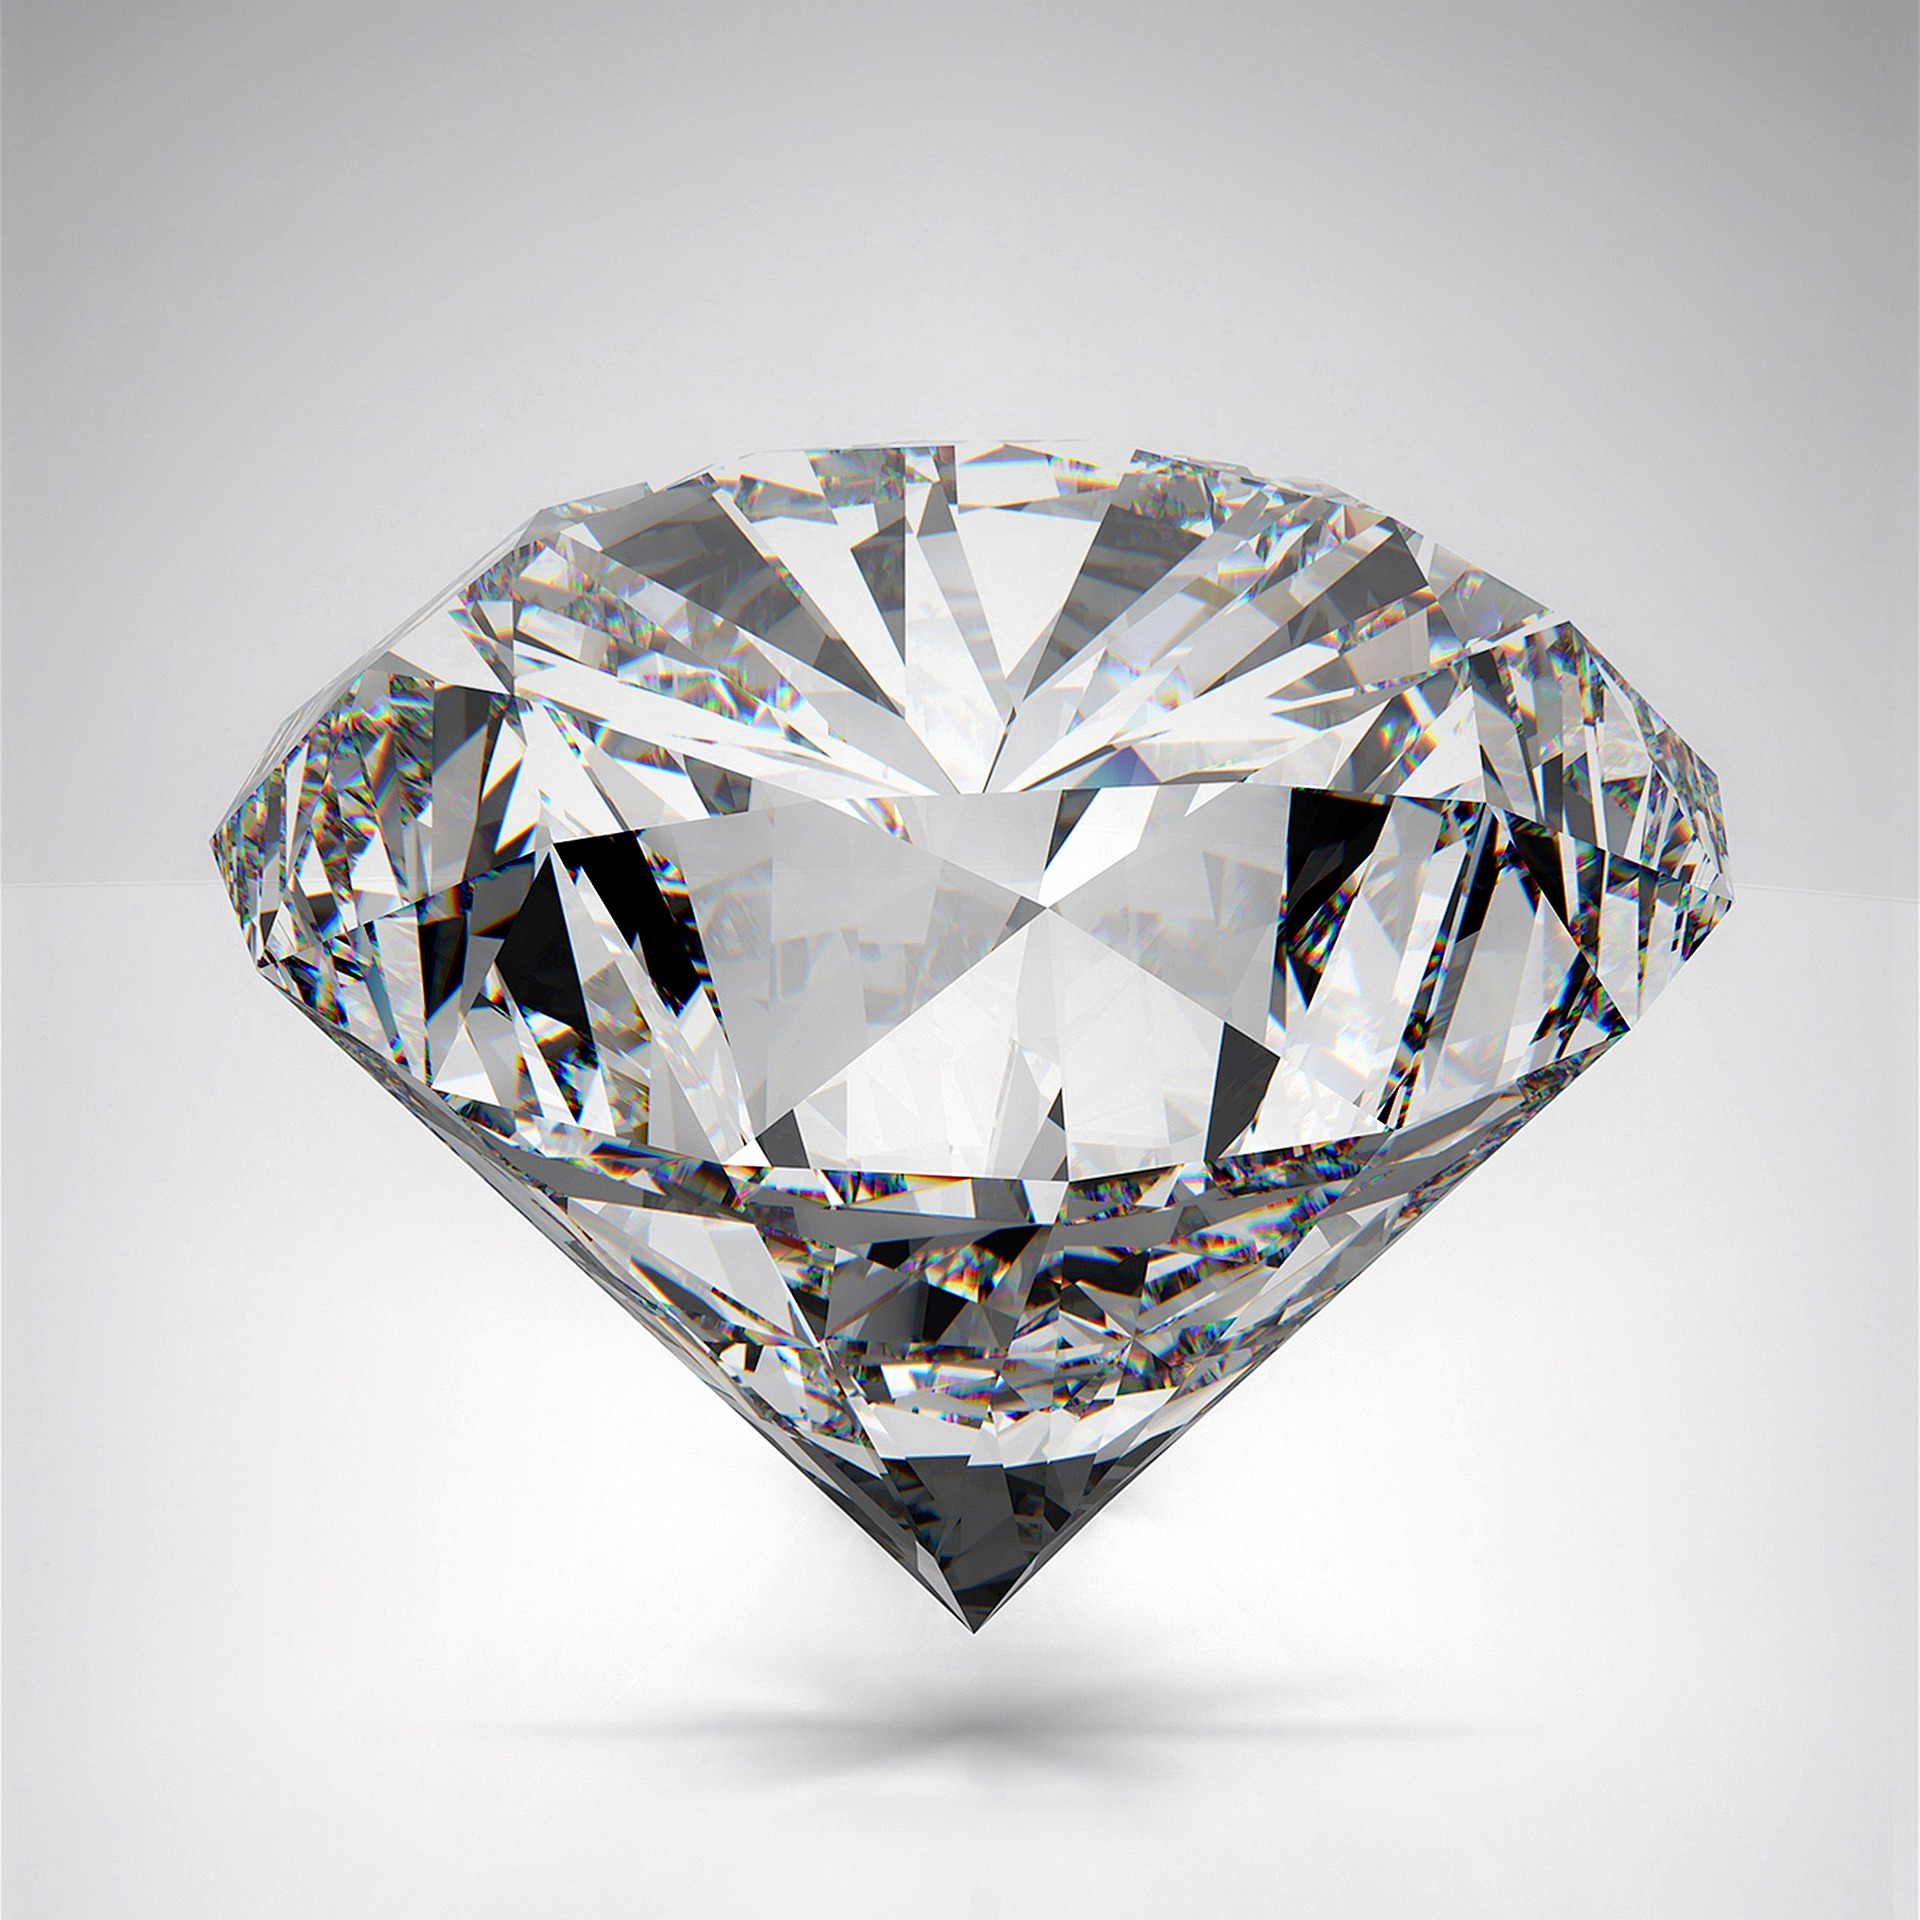 productions polished portfolio boeki laurent diamonds diamond